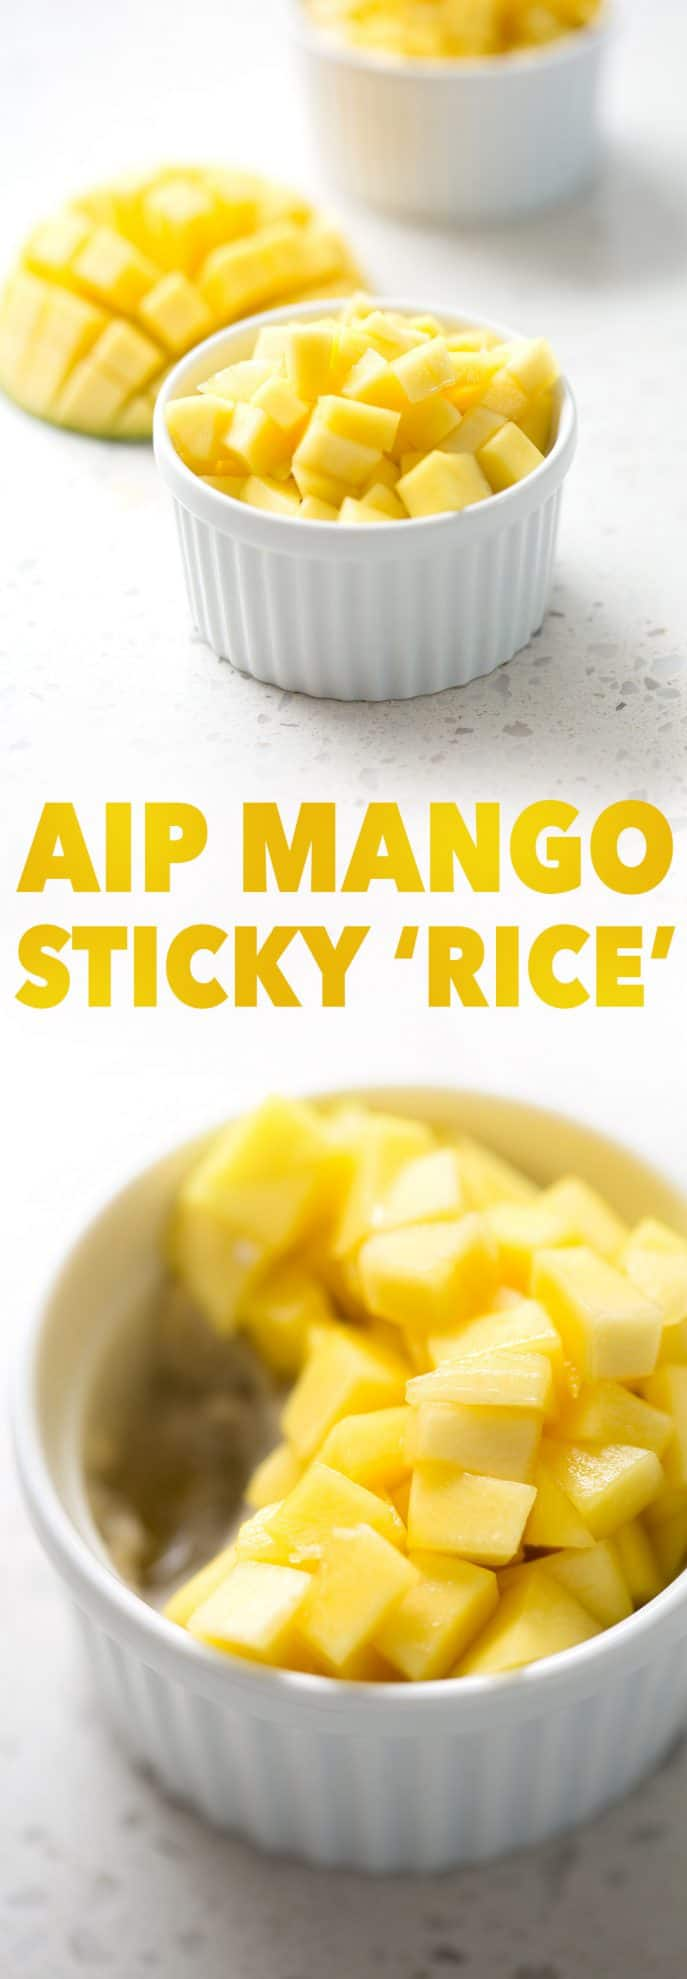 chopped mango with sticky 'rice' in ramekins